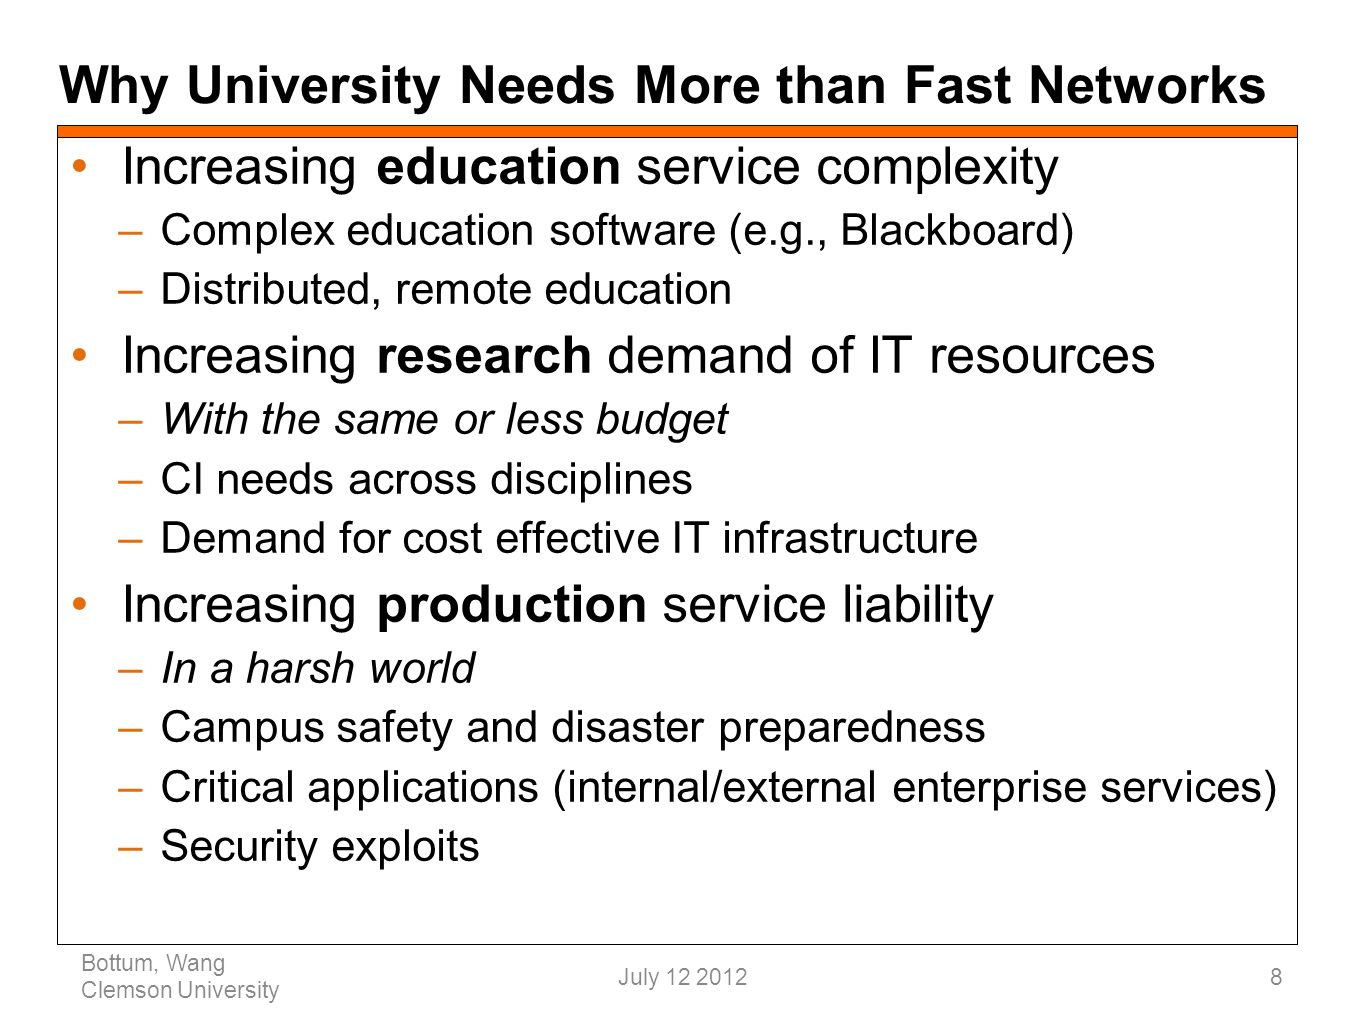 Why University Needs More than Fast Networks Bottum, Wang Clemson University 8 Increasing education service complexity –Complex education software (e.g., Blackboard) –Distributed, remote education Increasing research demand of IT resources –With the same or less budget –CI needs across disciplines –Demand for cost effective IT infrastructure Increasing production service liability –In a harsh world –Campus safety and disaster preparedness –Critical applications (internal/external enterprise services) –Security exploits July 12 2012